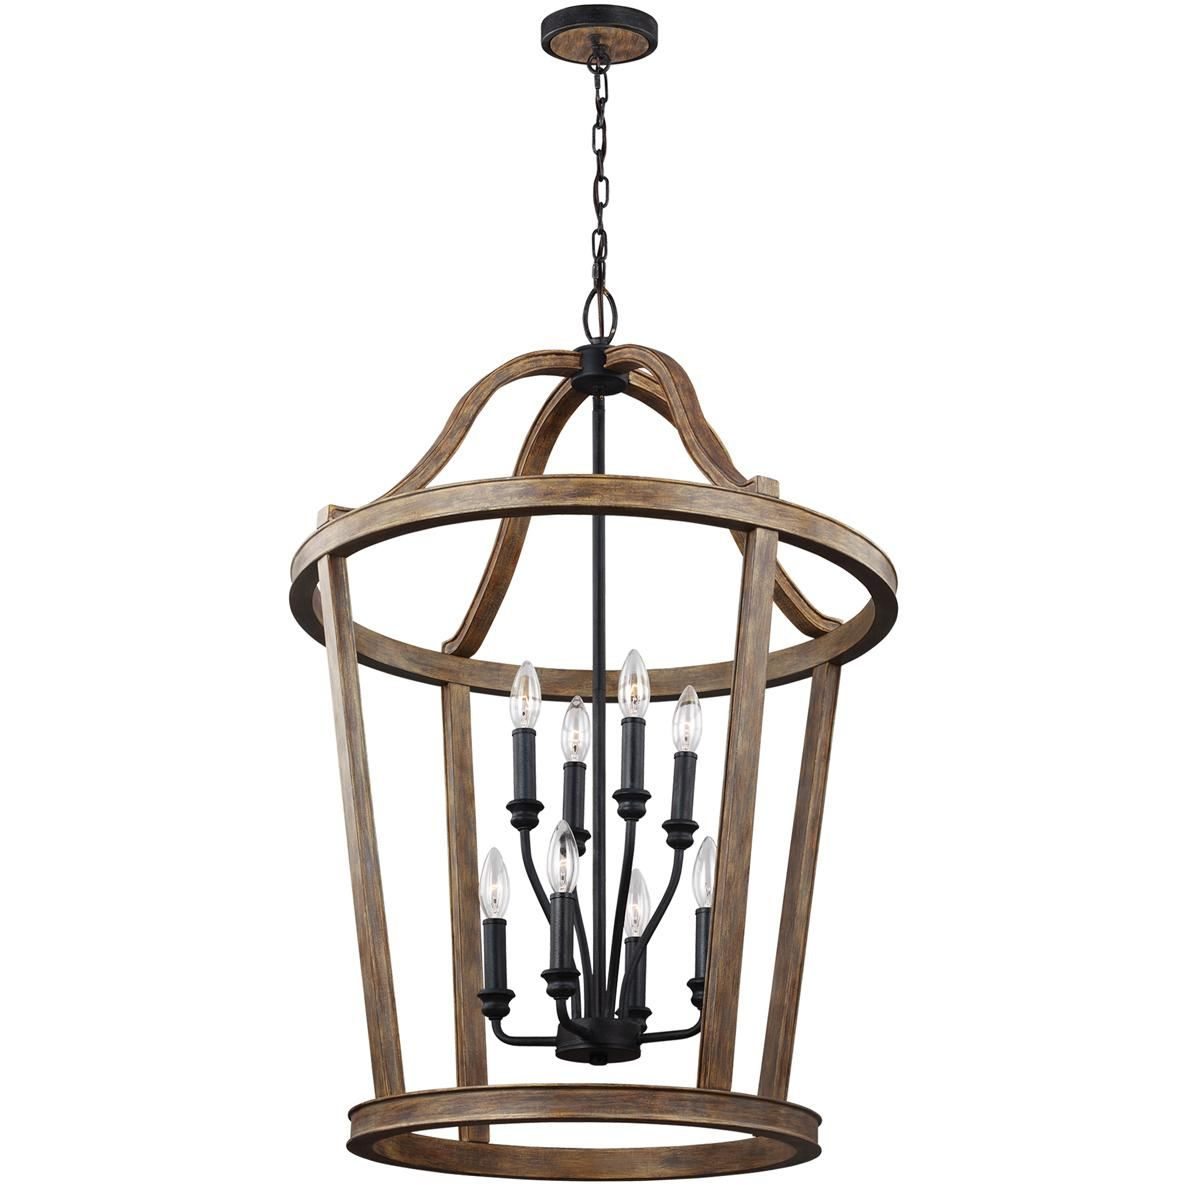 chandeliers large restoration rustic awesome of extraordinary modern chandelier mesmerizing a guy to the hardware junk about in pleasing make store